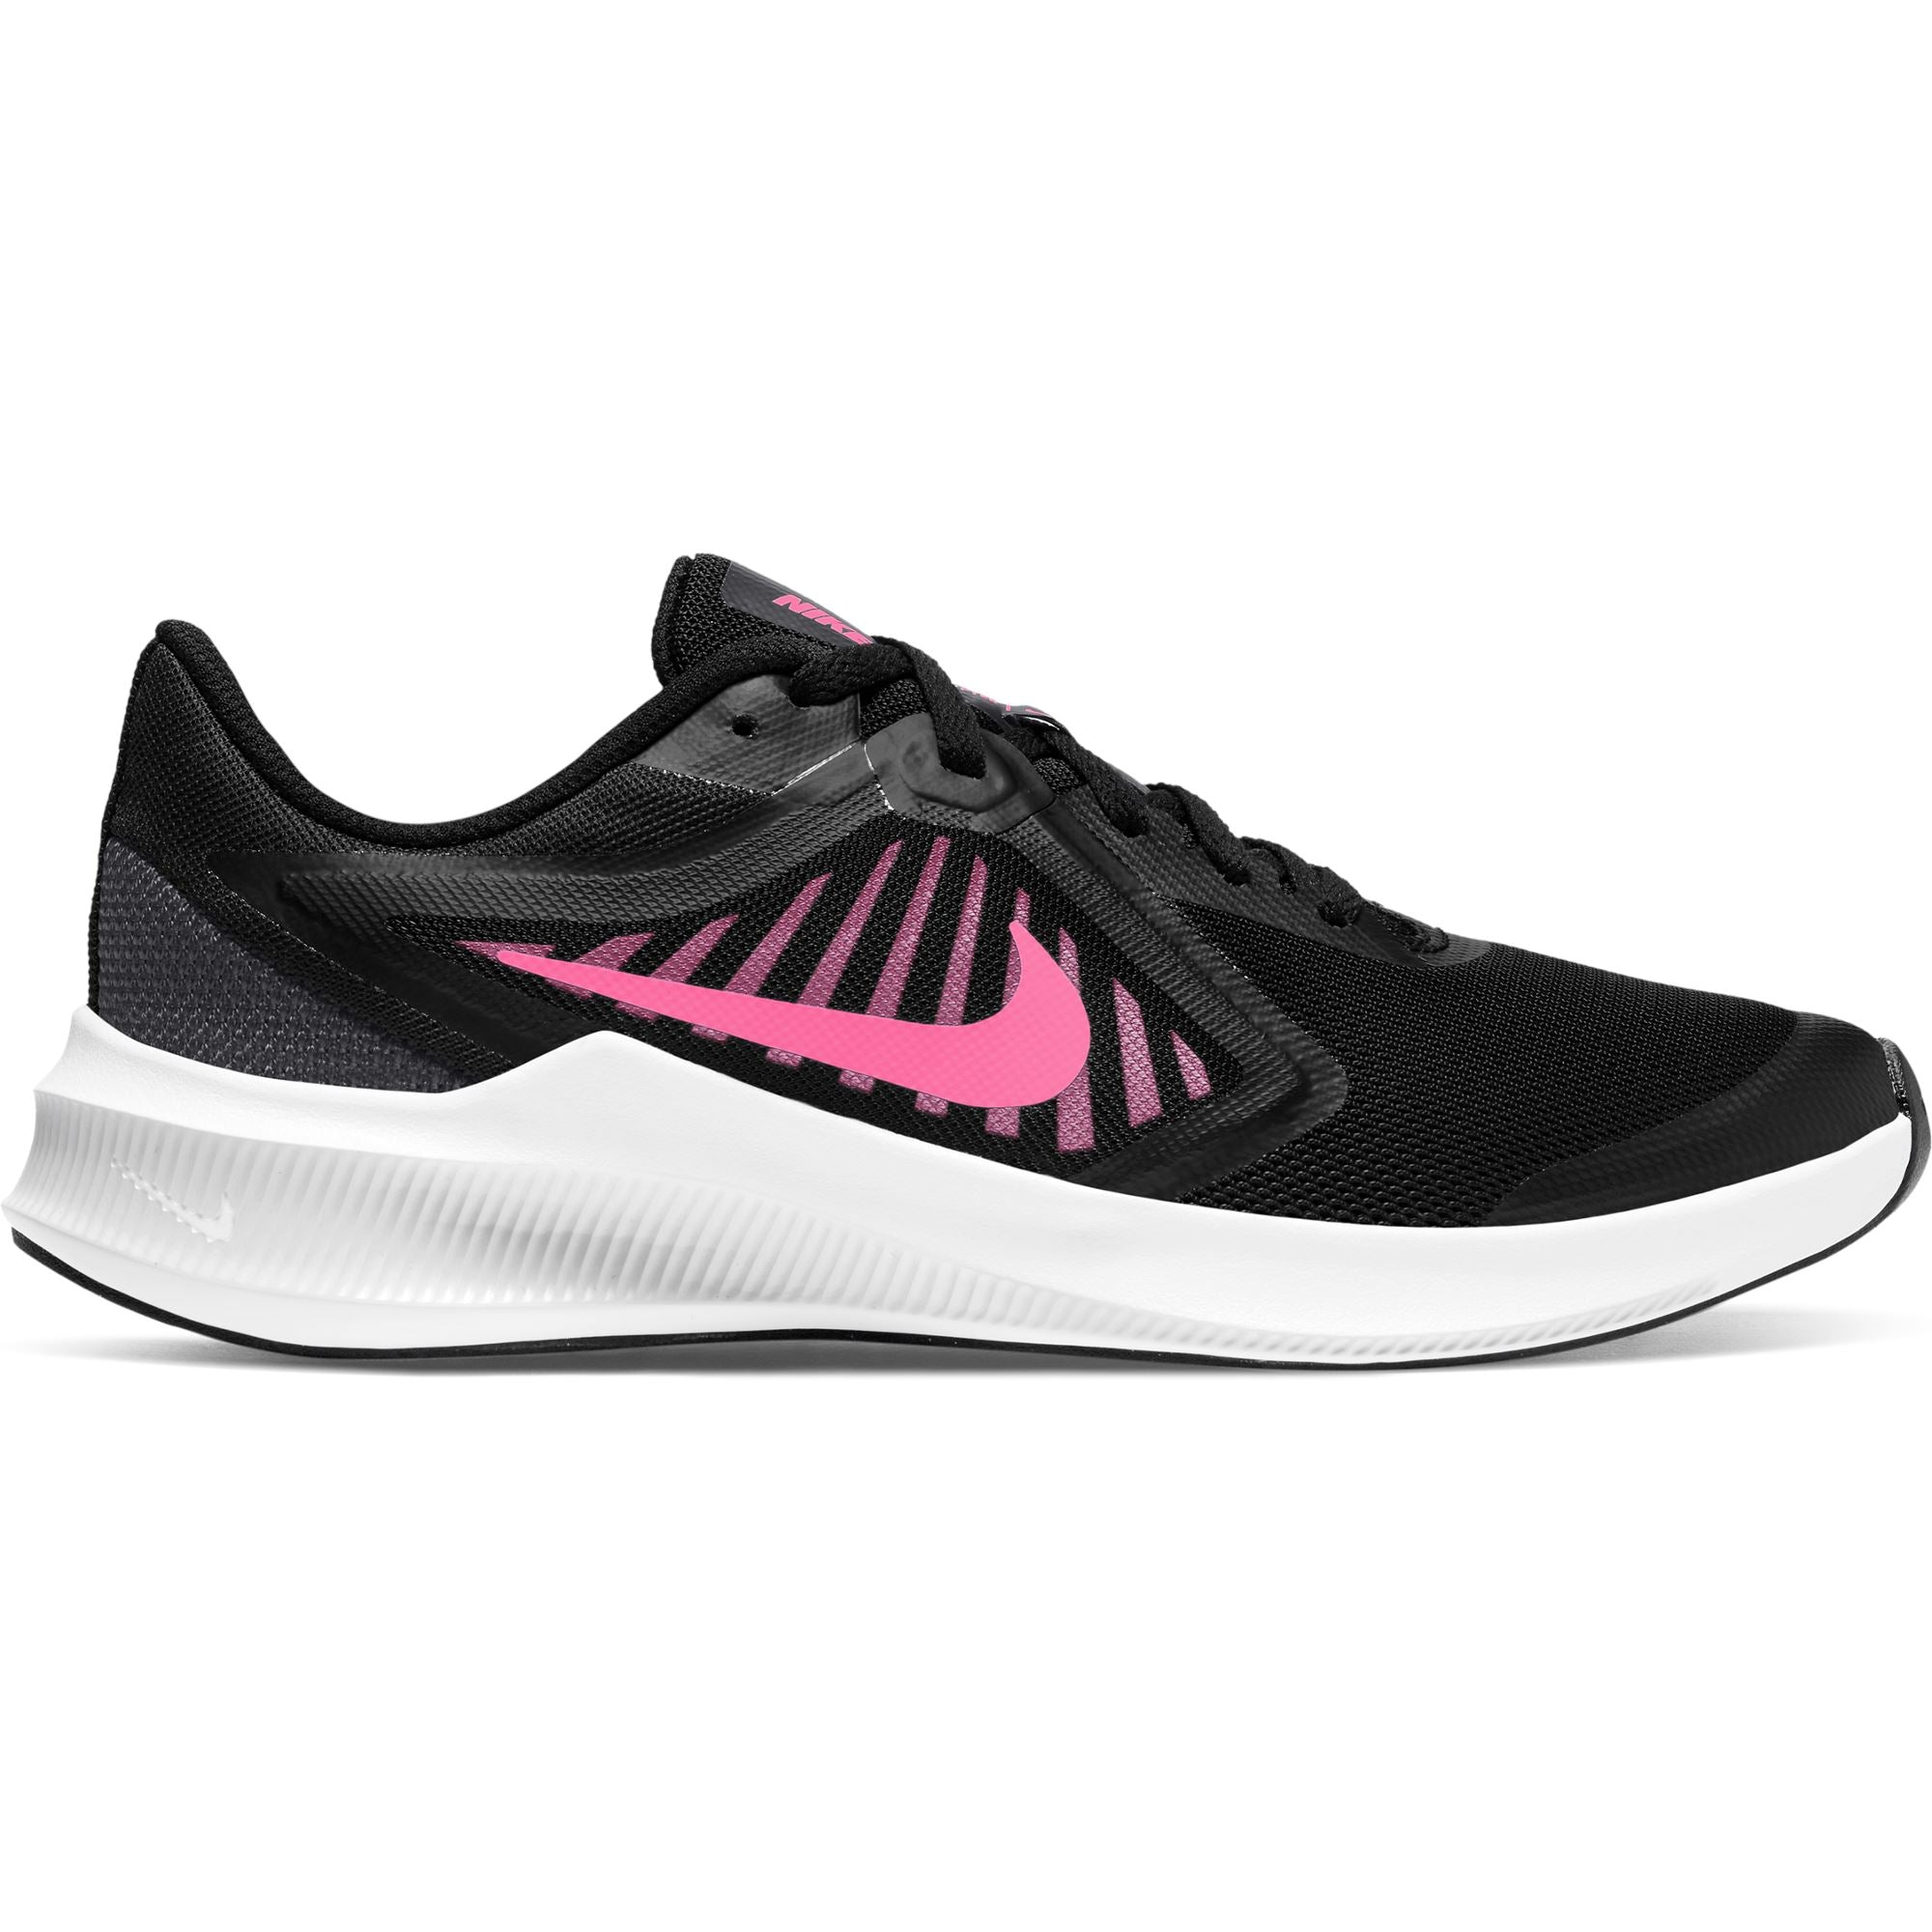 Nike Kids Running Downshifter 10 (Big Kids) - Black/Pink Glow-Anthracite-White Nike